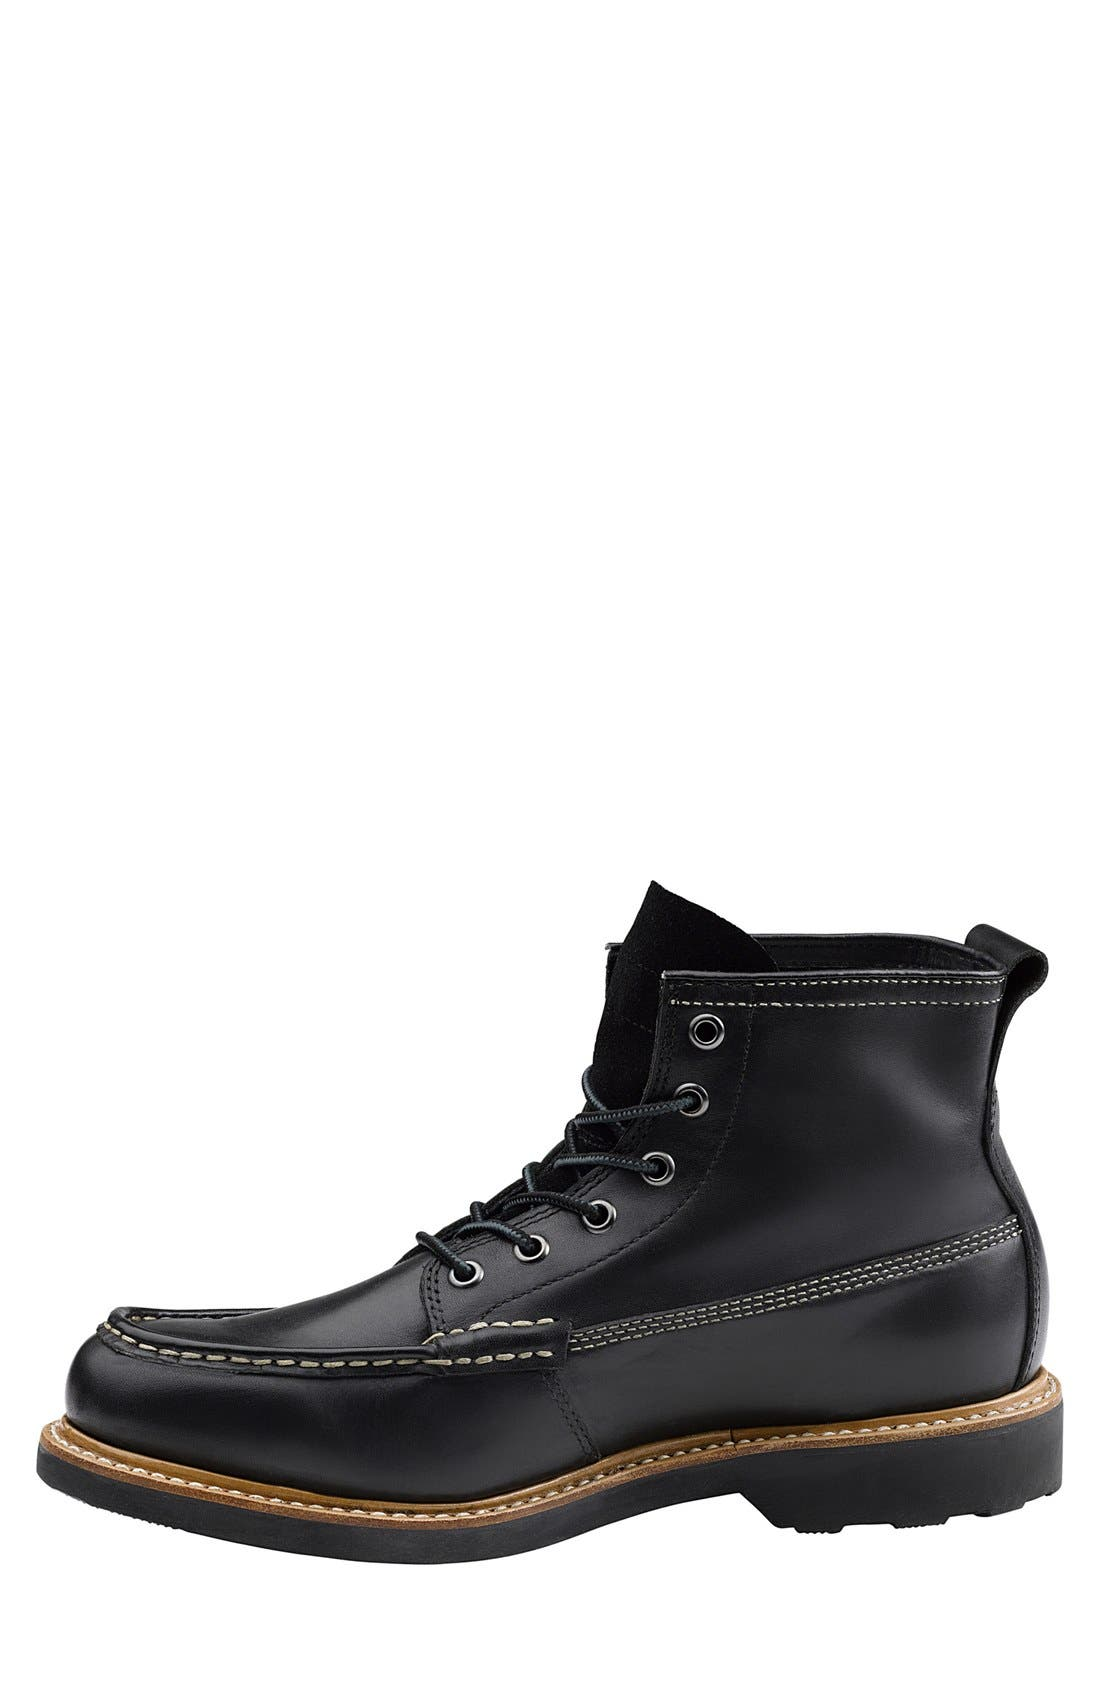 'Ashby' Moc Toe Boot,                             Alternate thumbnail 4, color,